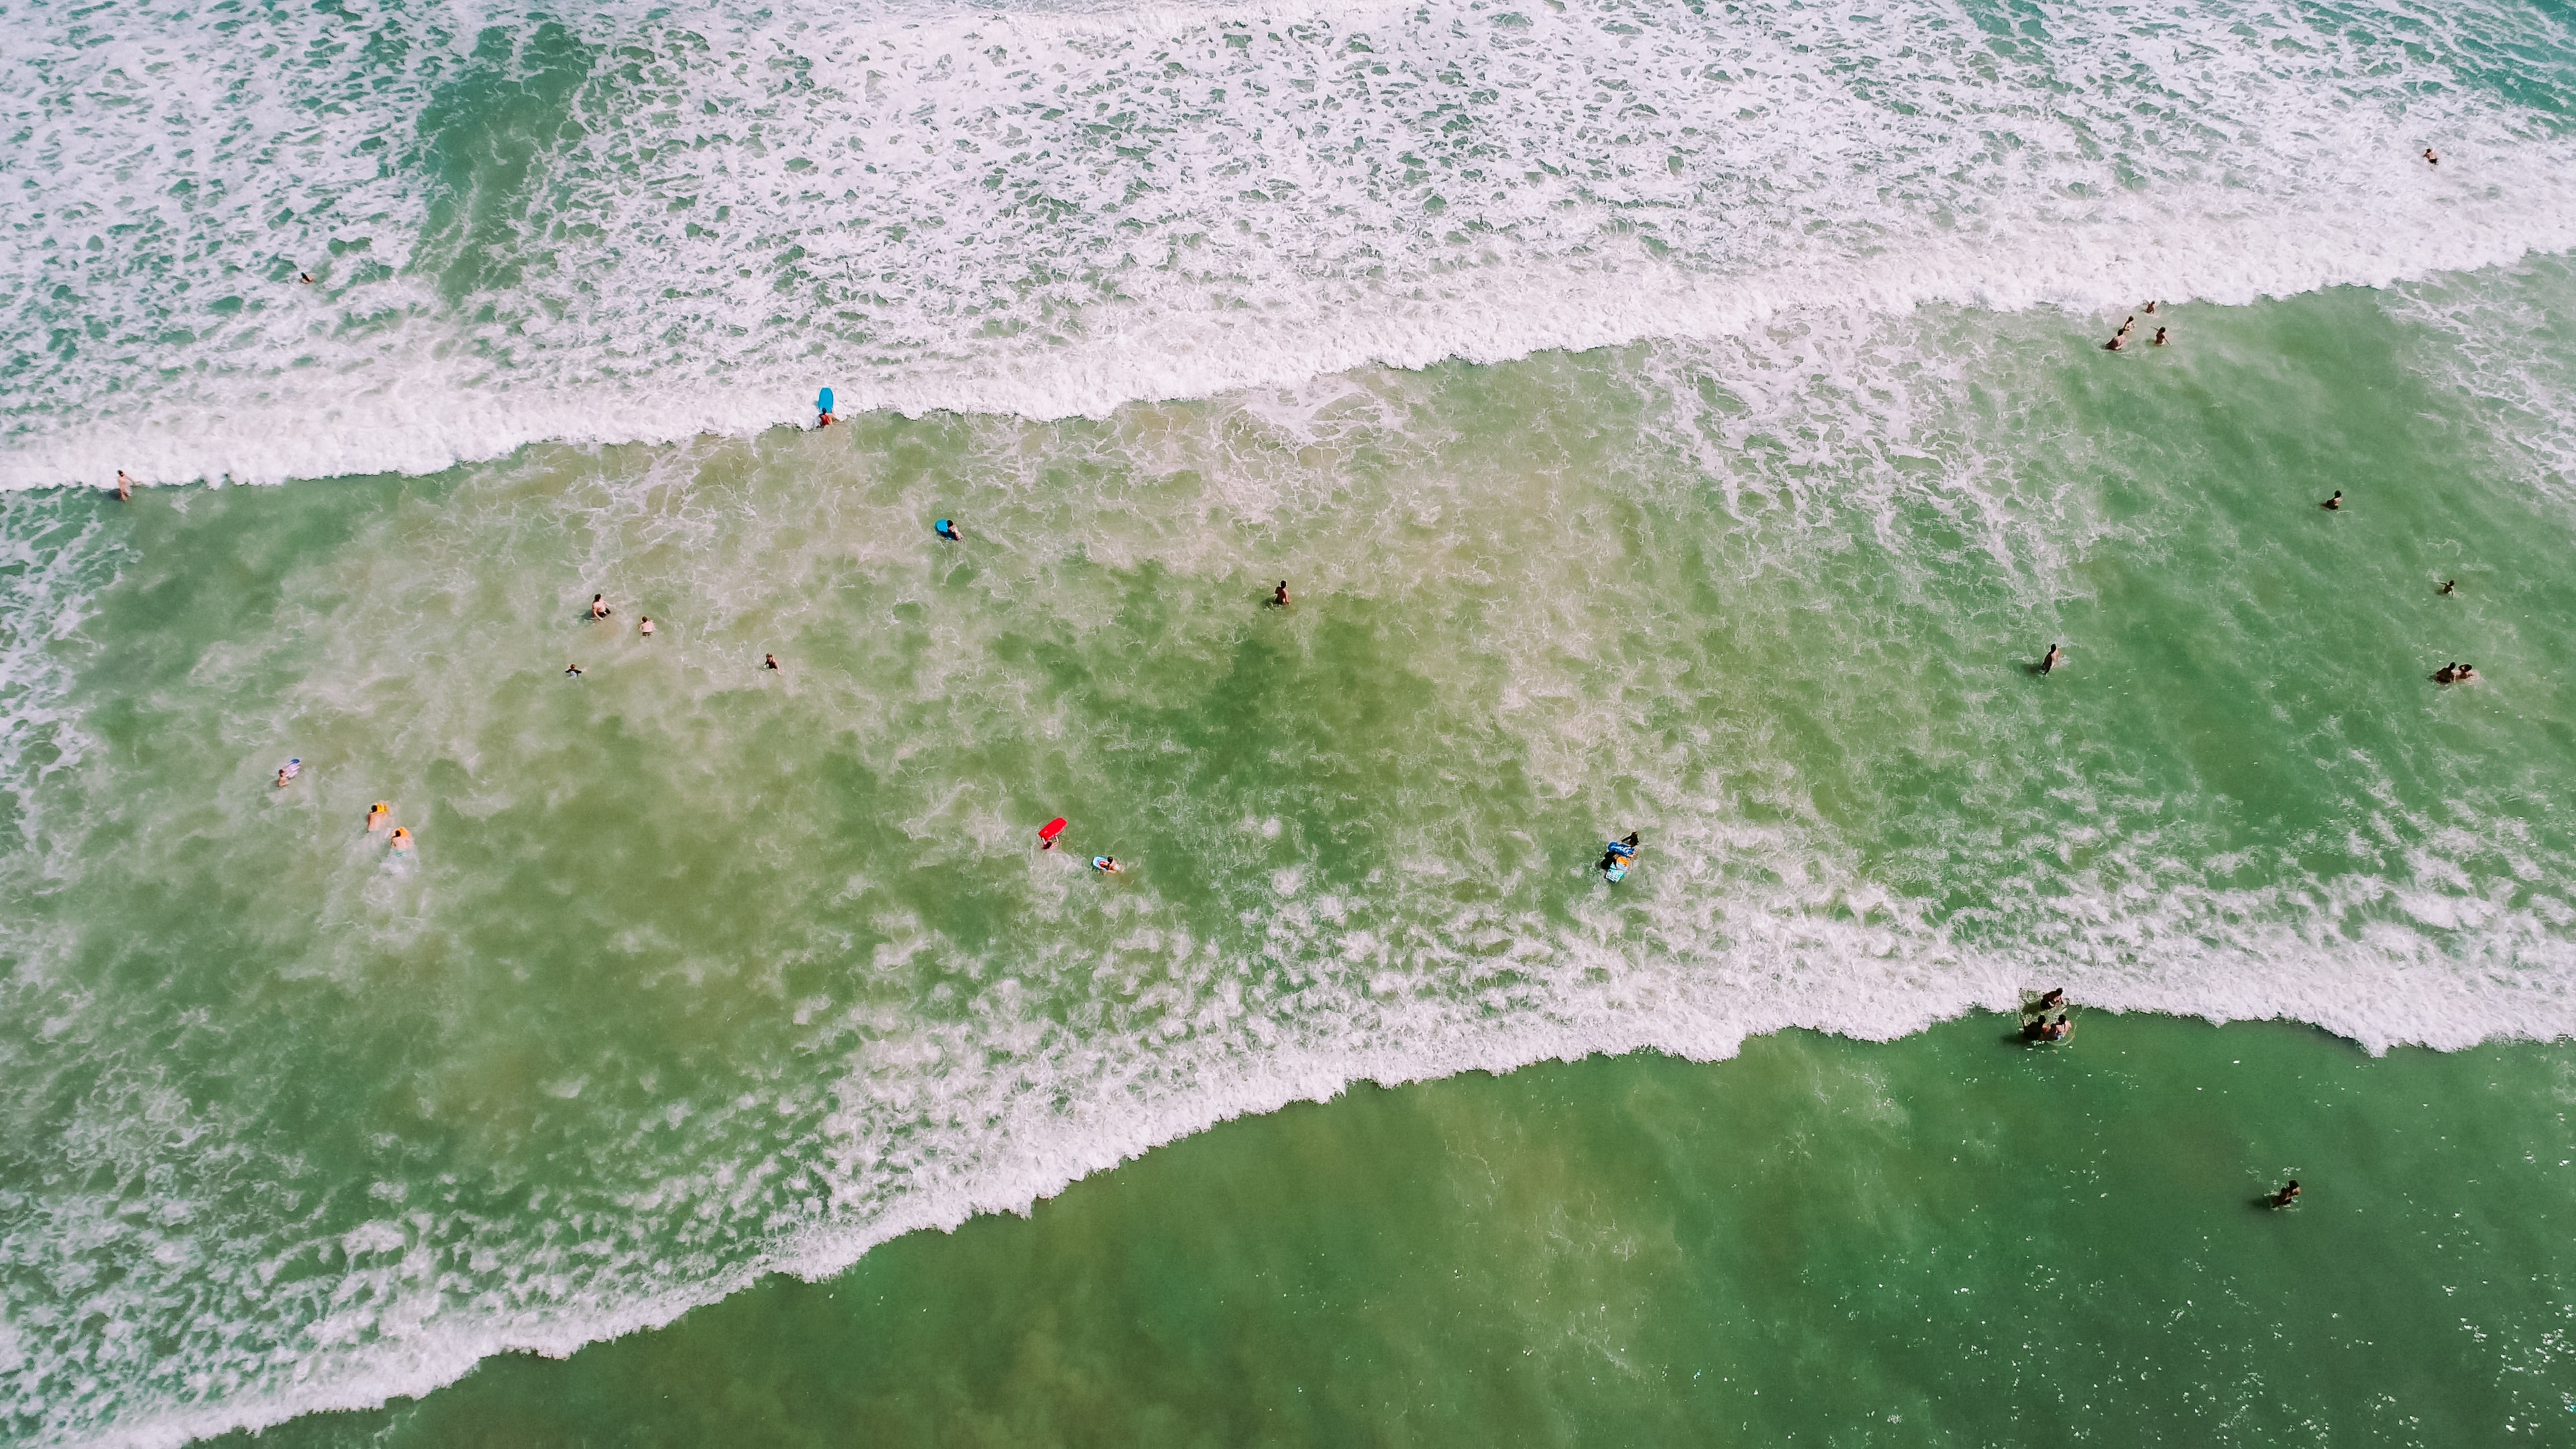 Drone aerial view of the people washed by the waves in shallow water at Cocoa Beach